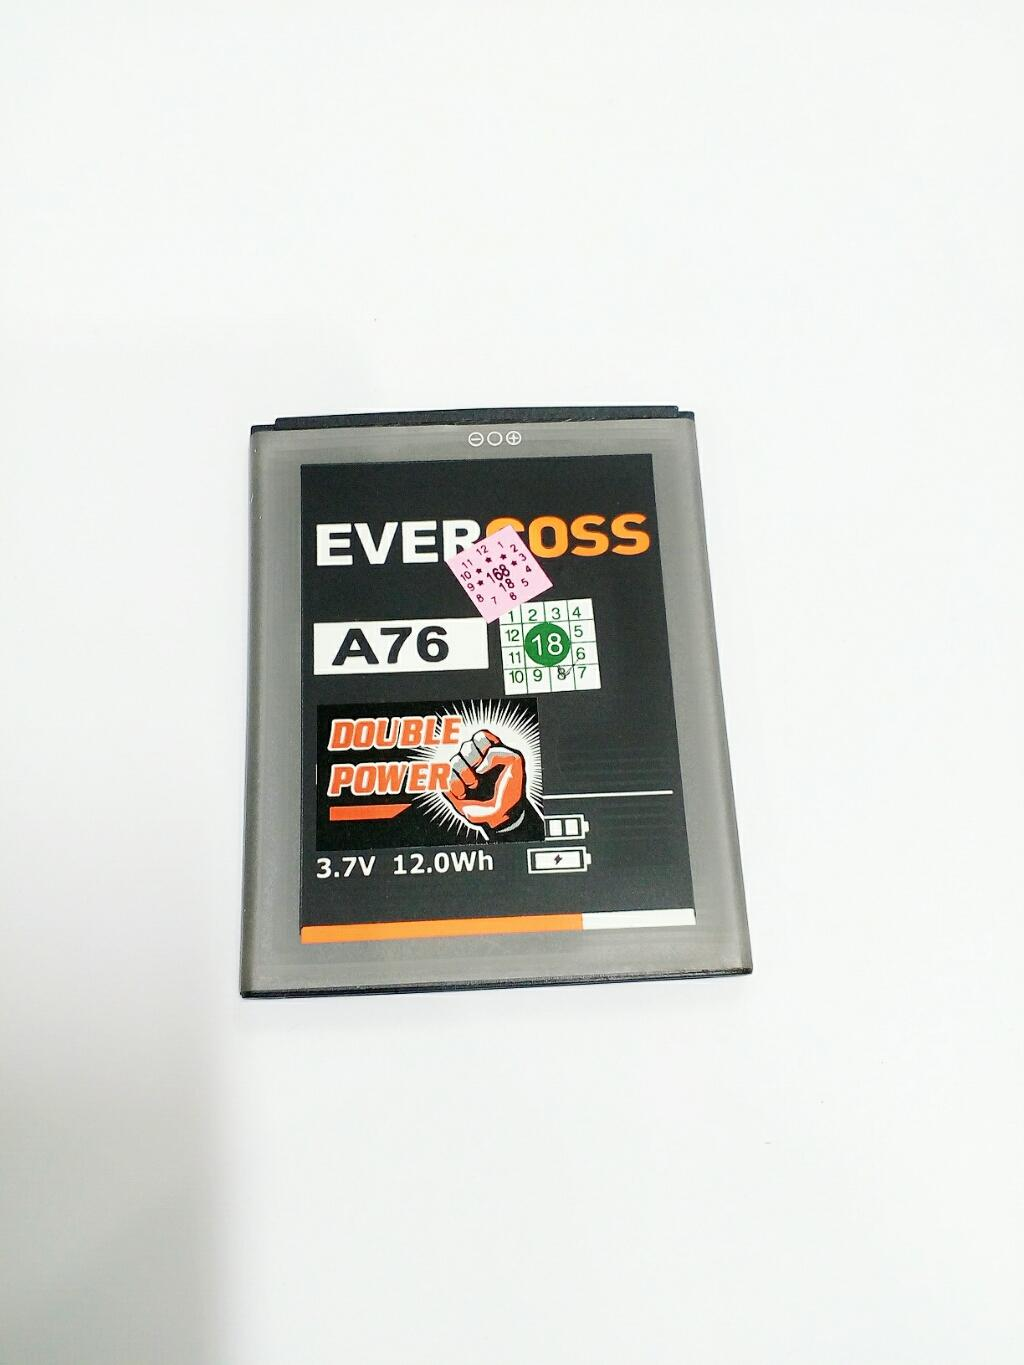 Jual Beli Battery Baterai Batre Evercross Evercoss Cross A28b A5a Double Power